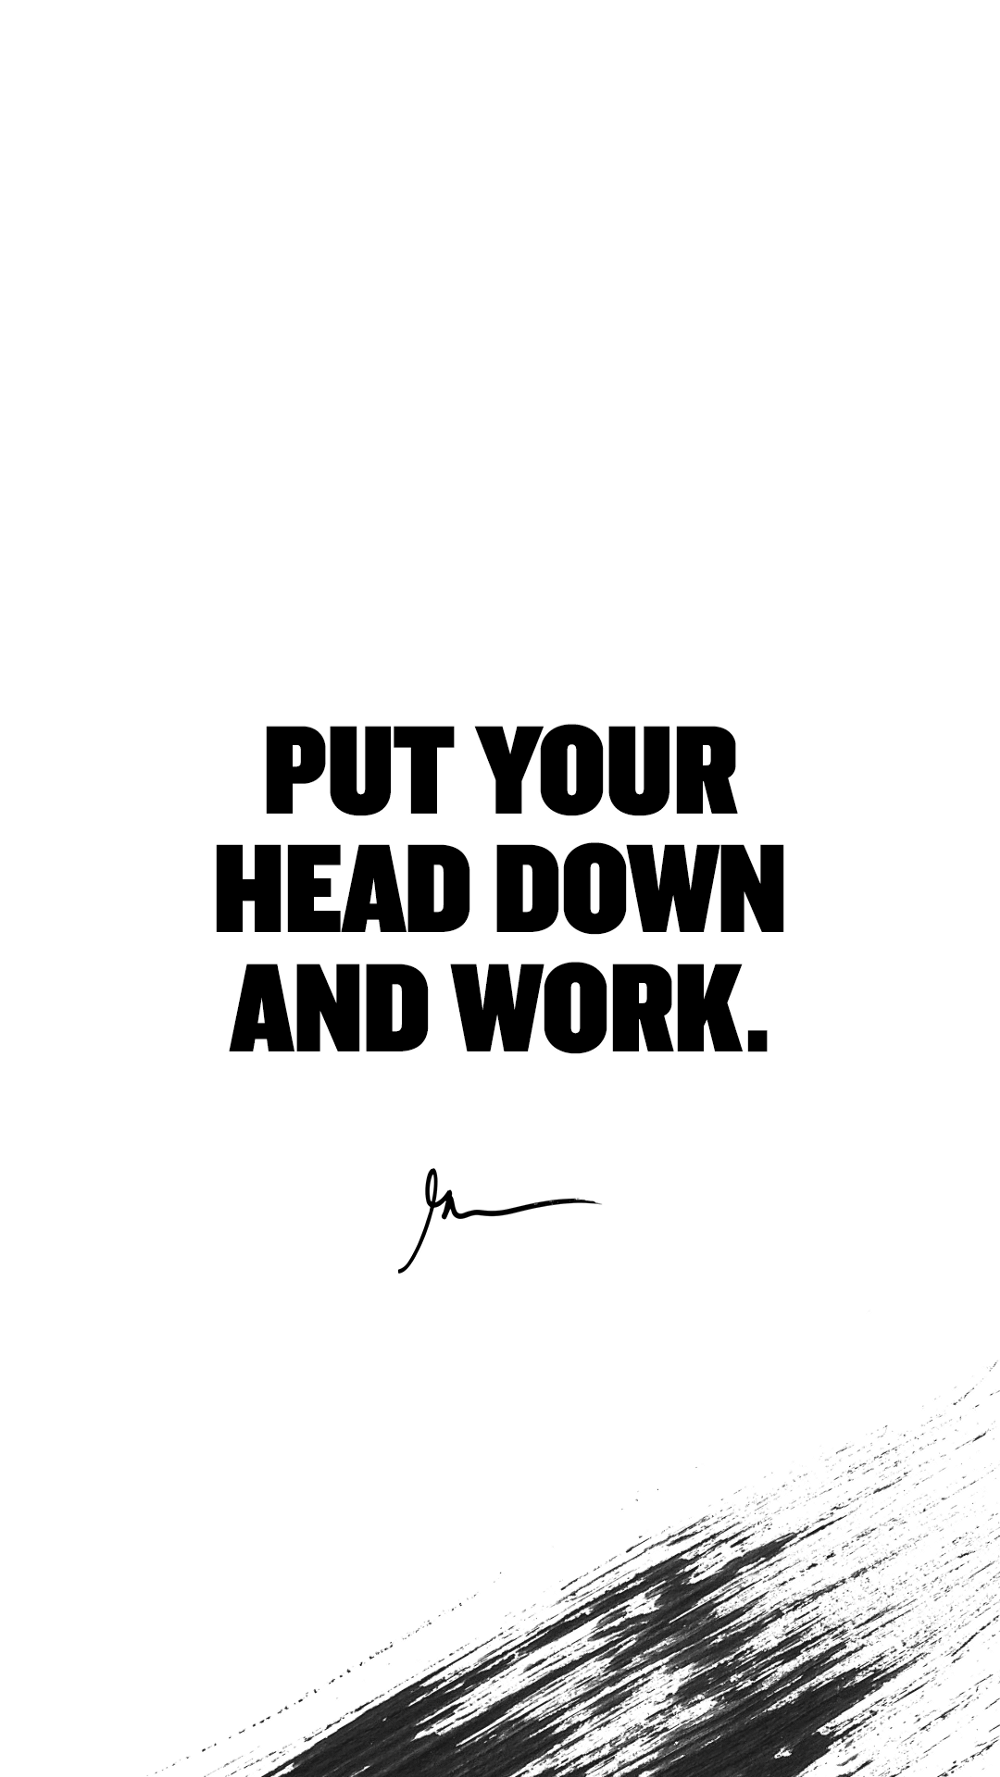 Put Your Head Down And Work